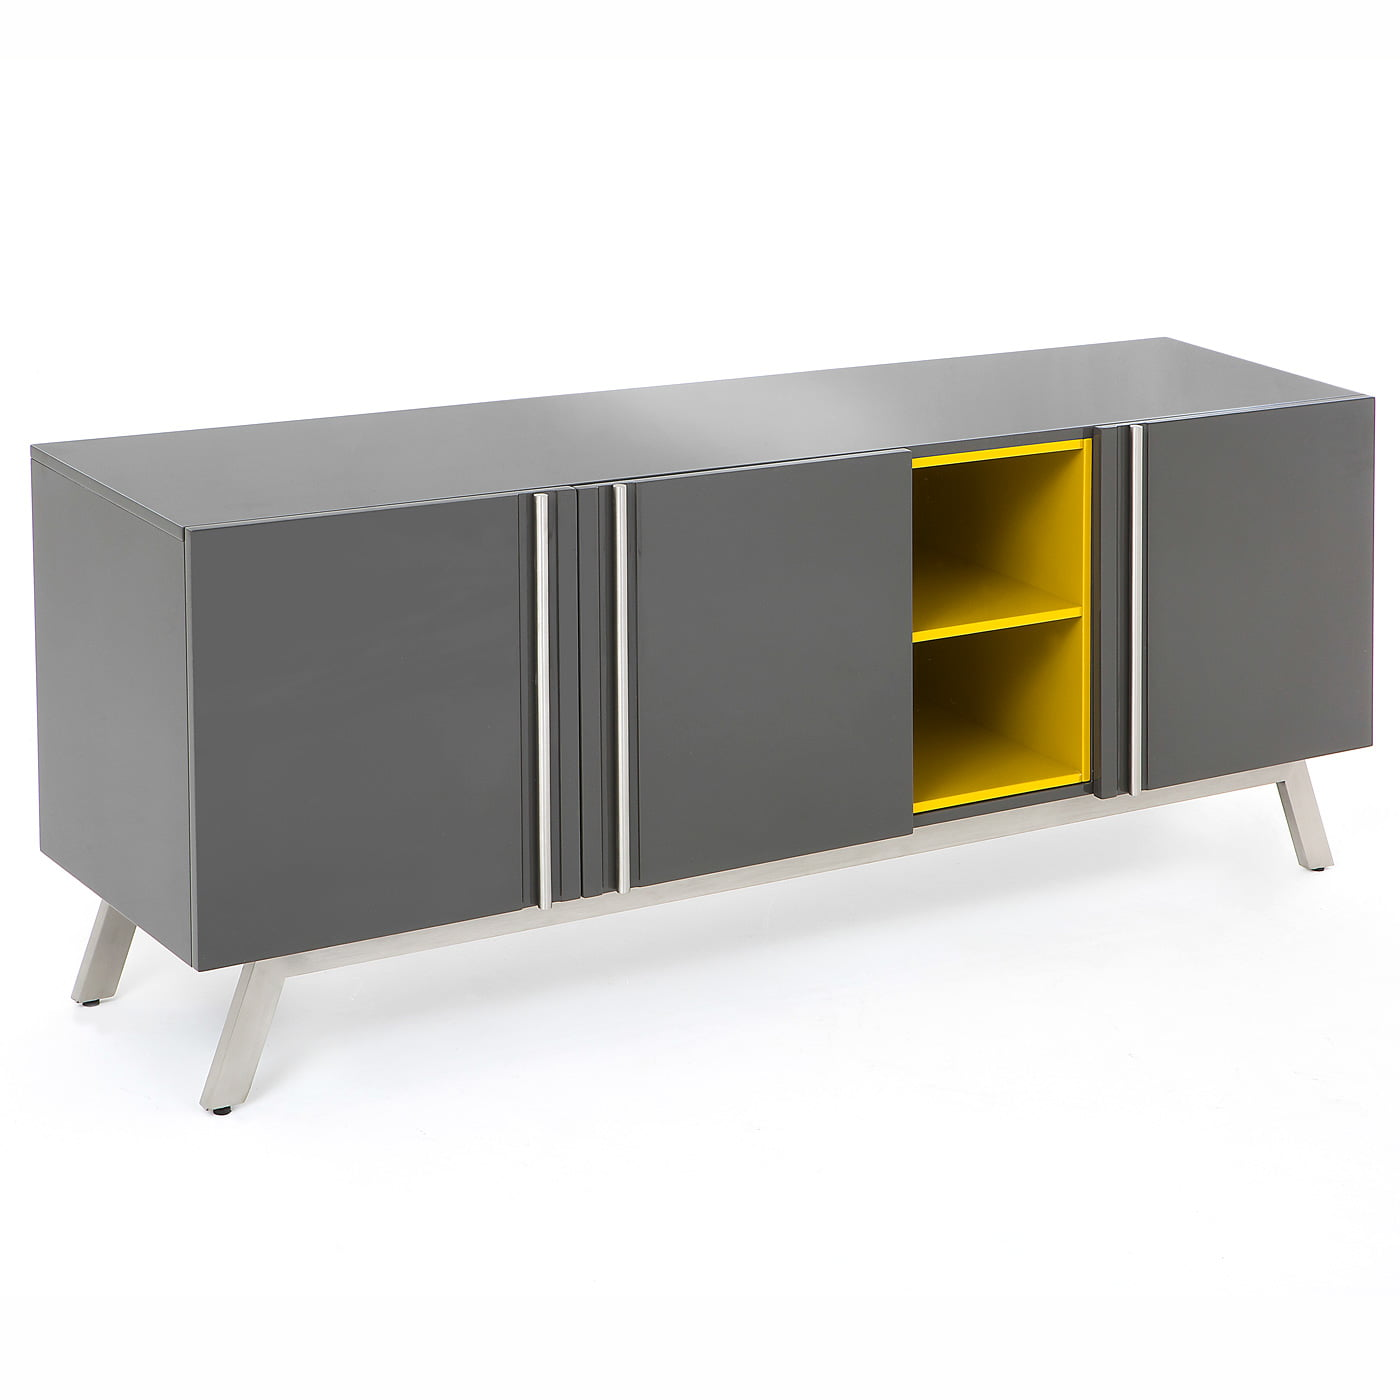 Vestina Greyyellow High Gloss Large Sideboard on furniture desks